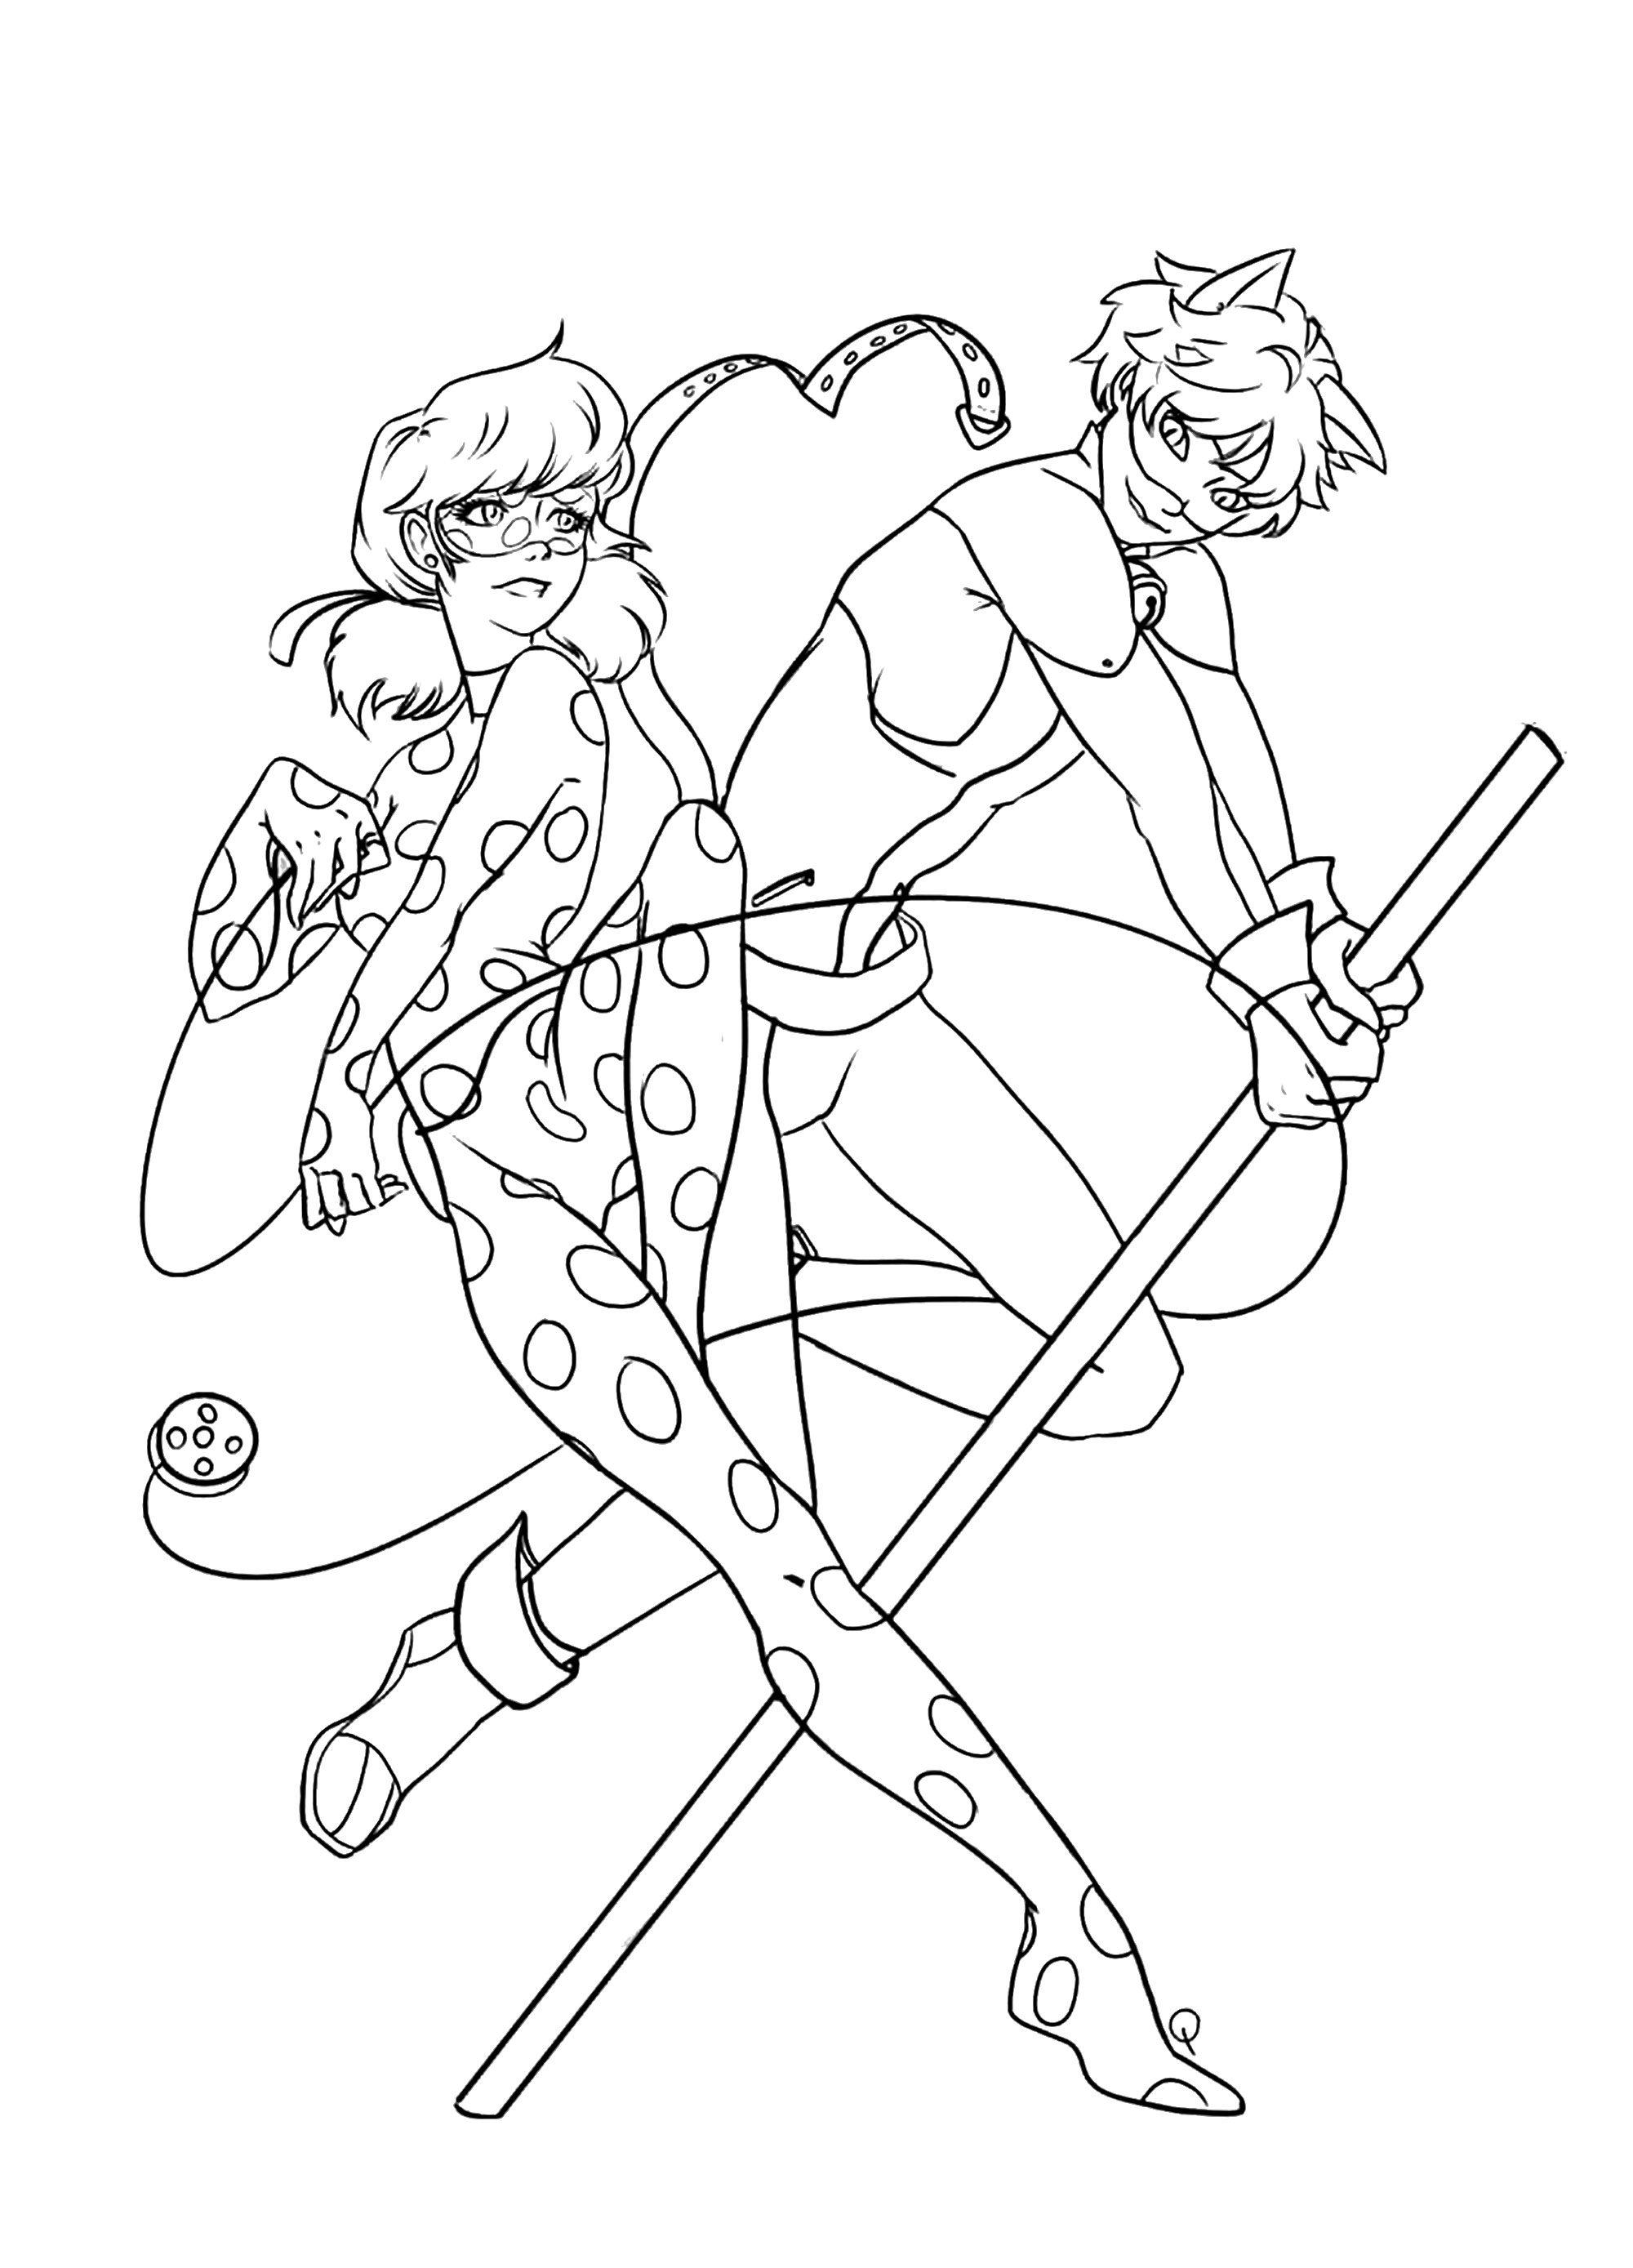 Simple free Miraculous Lady Bug coloring page to print and color